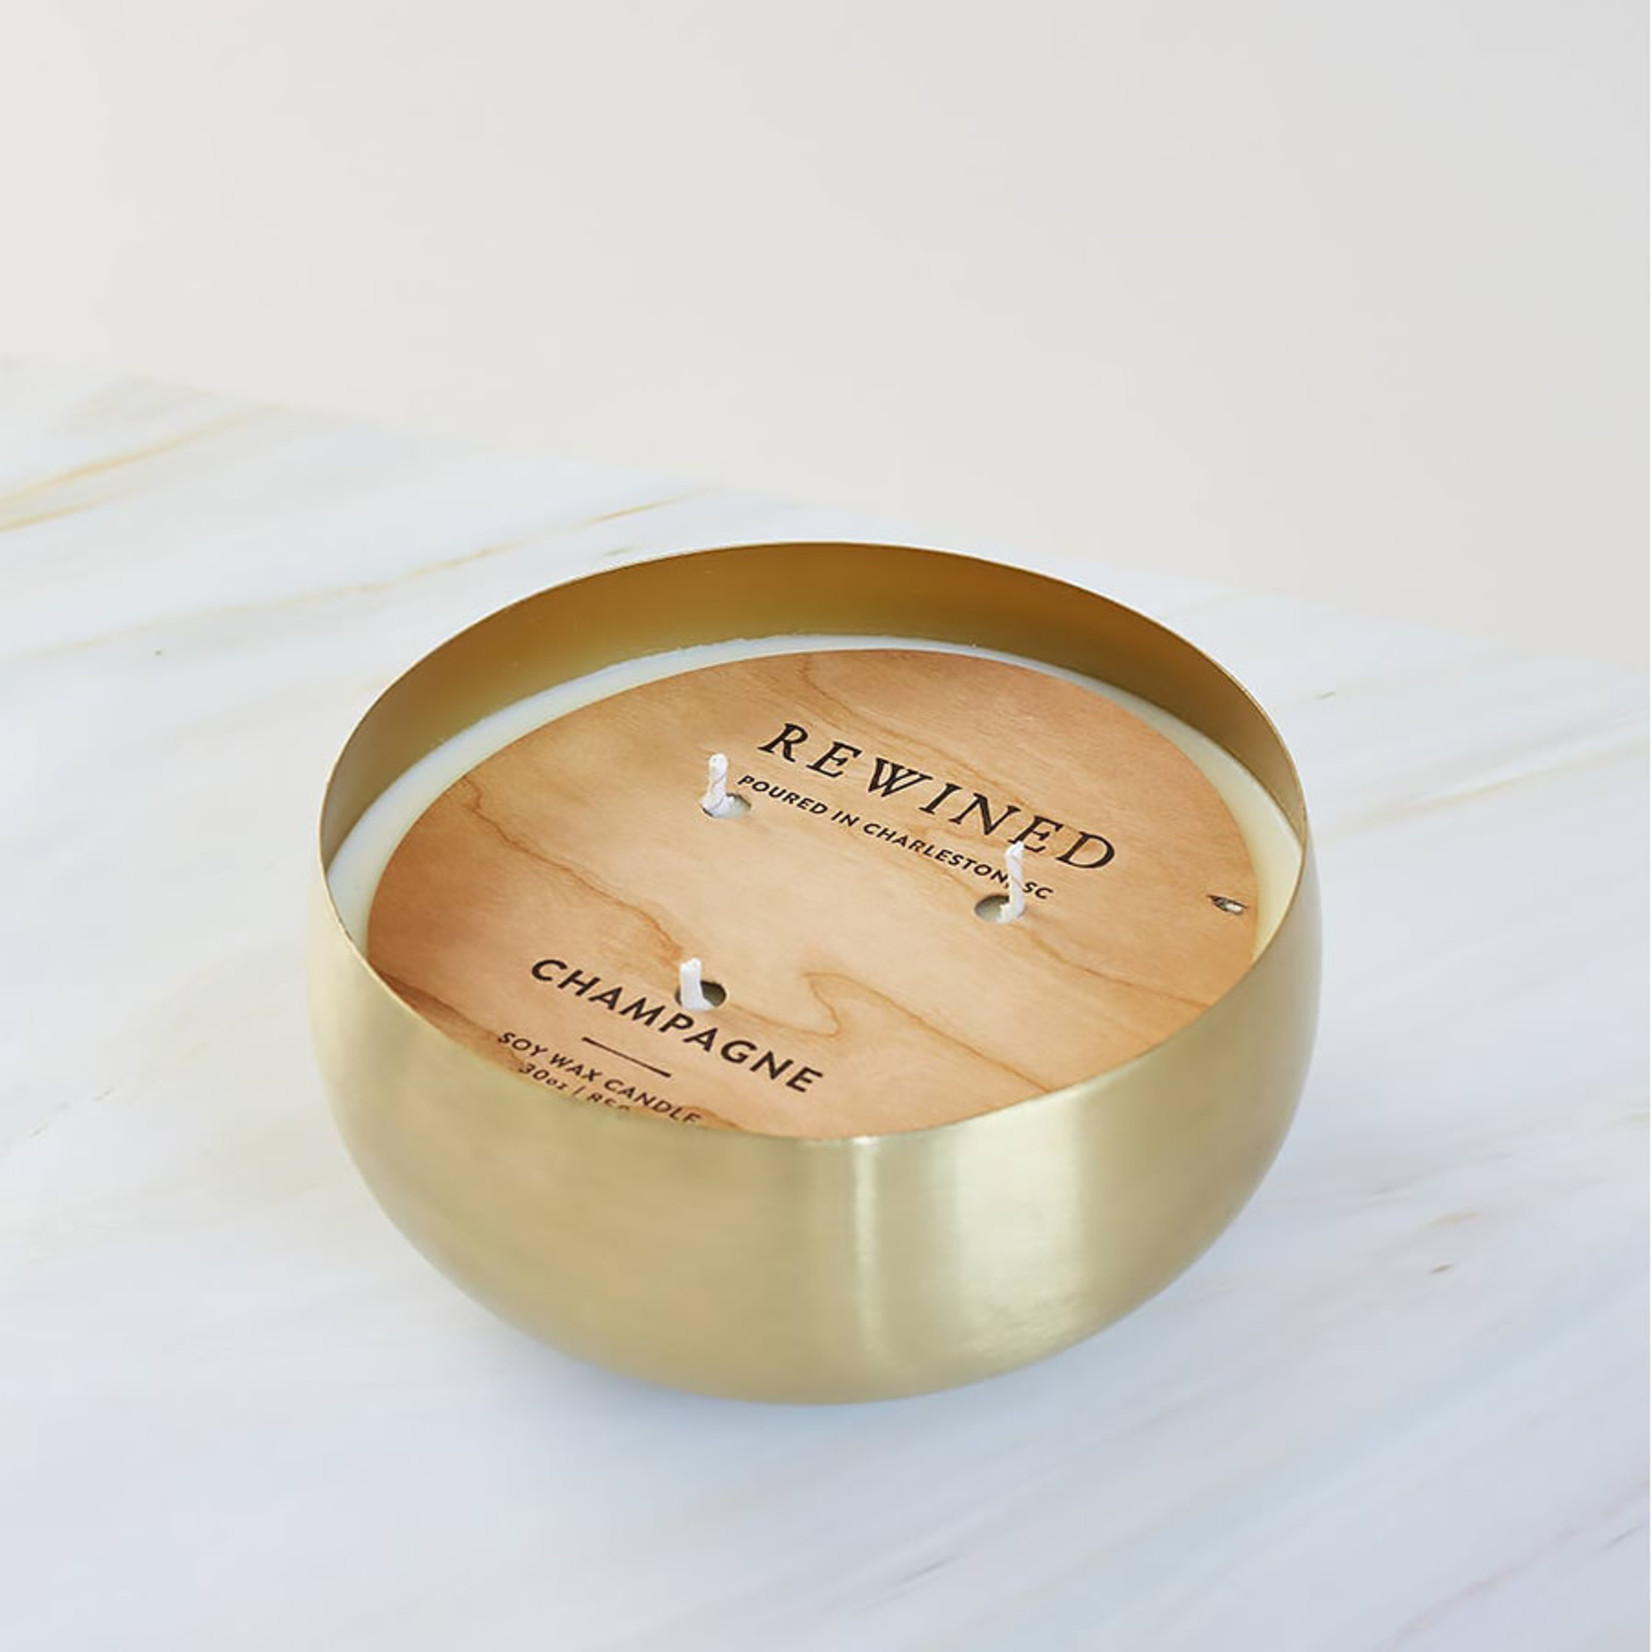 Rewined Gold Bowl Candle